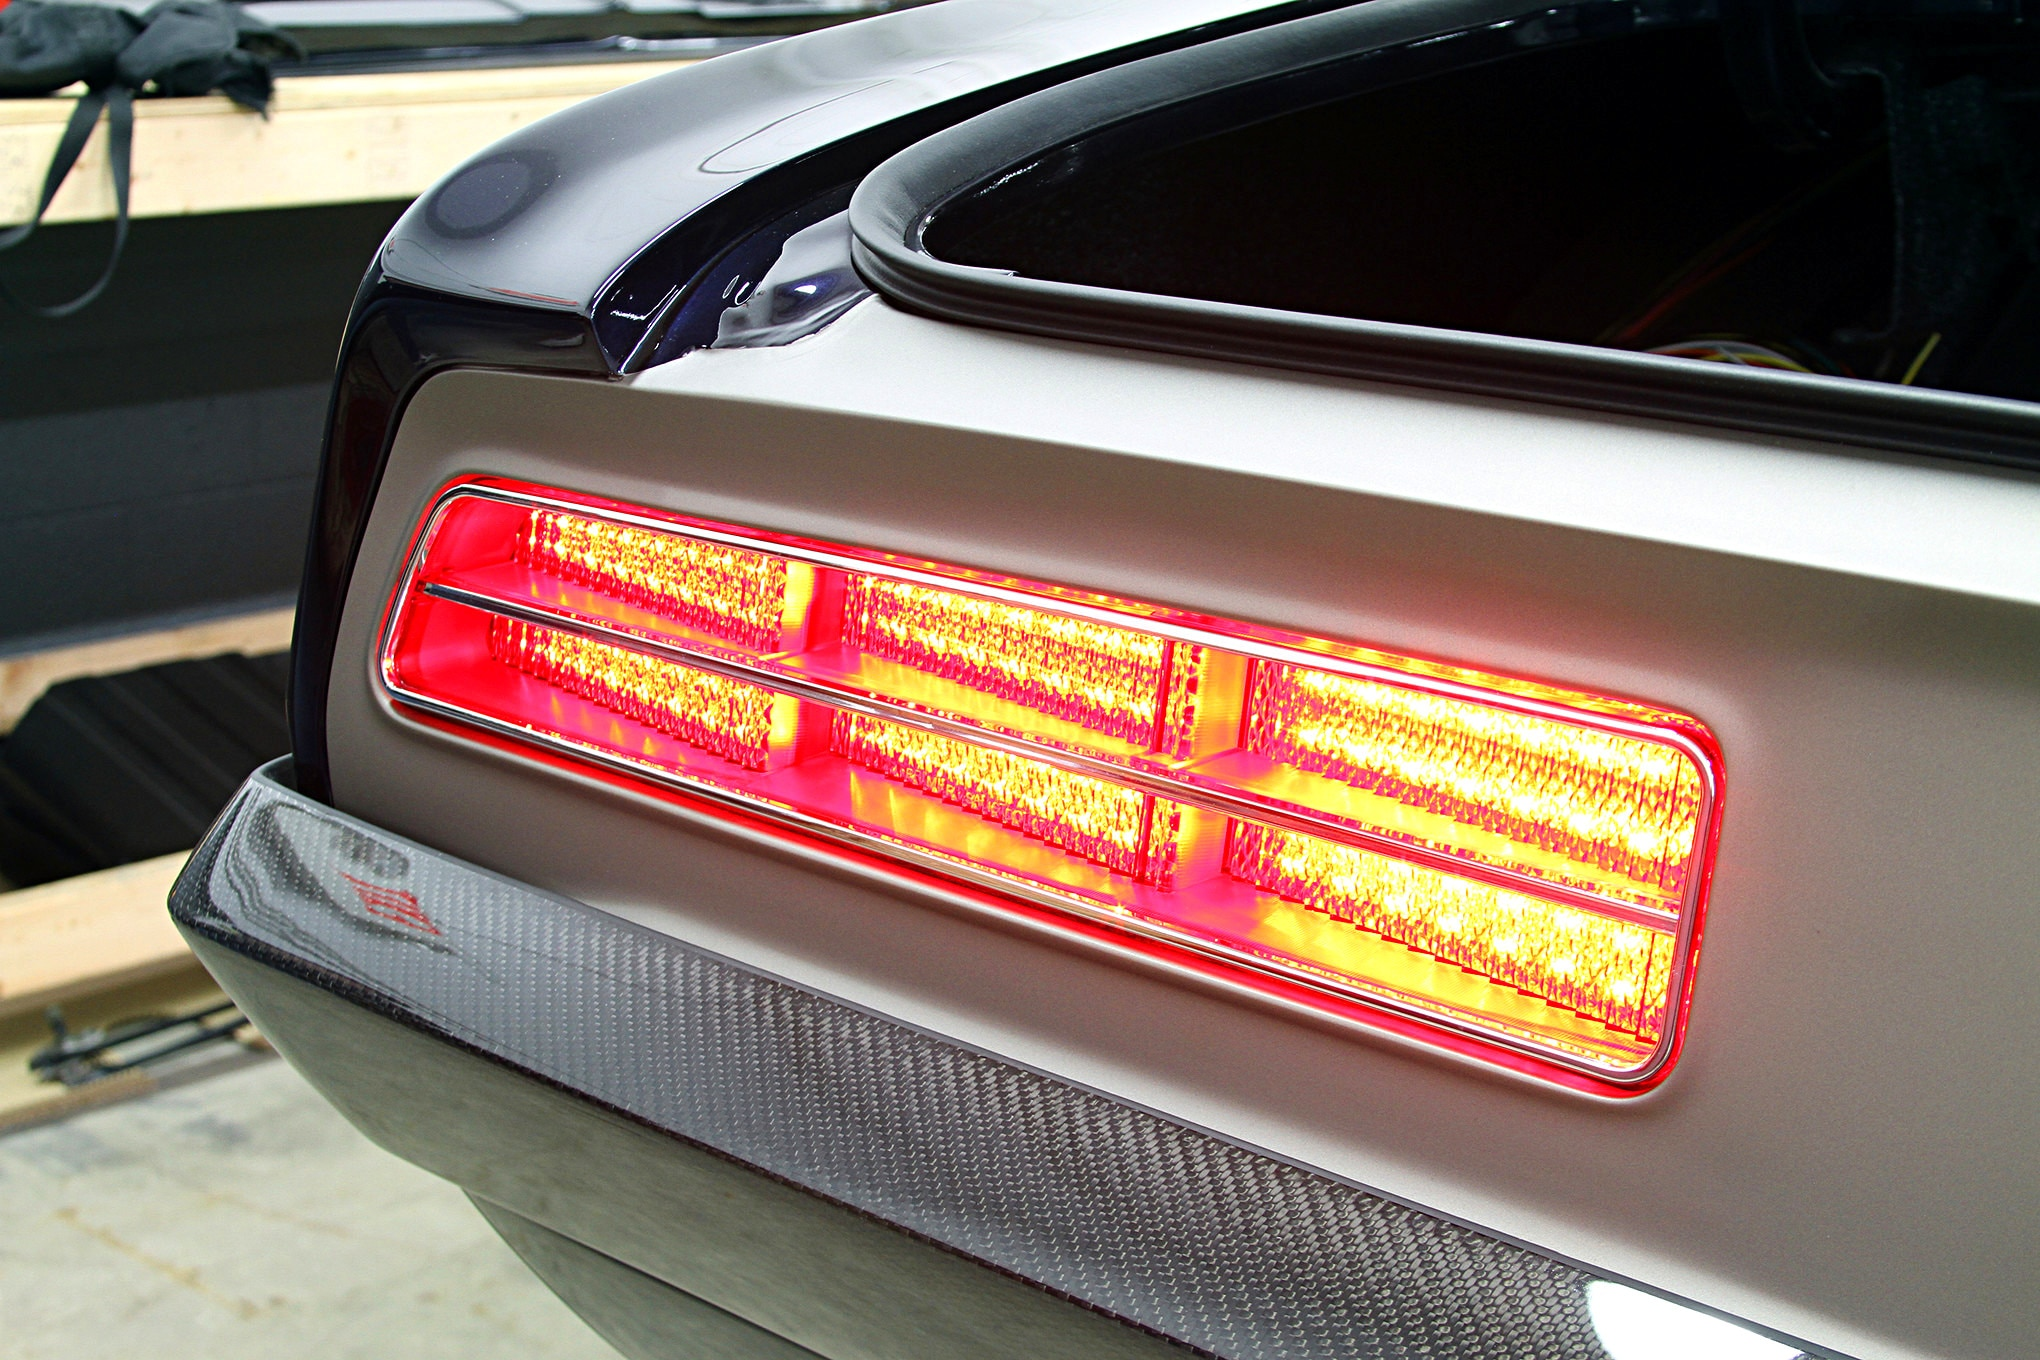 001 1969 Camaro Led Taillight Installation